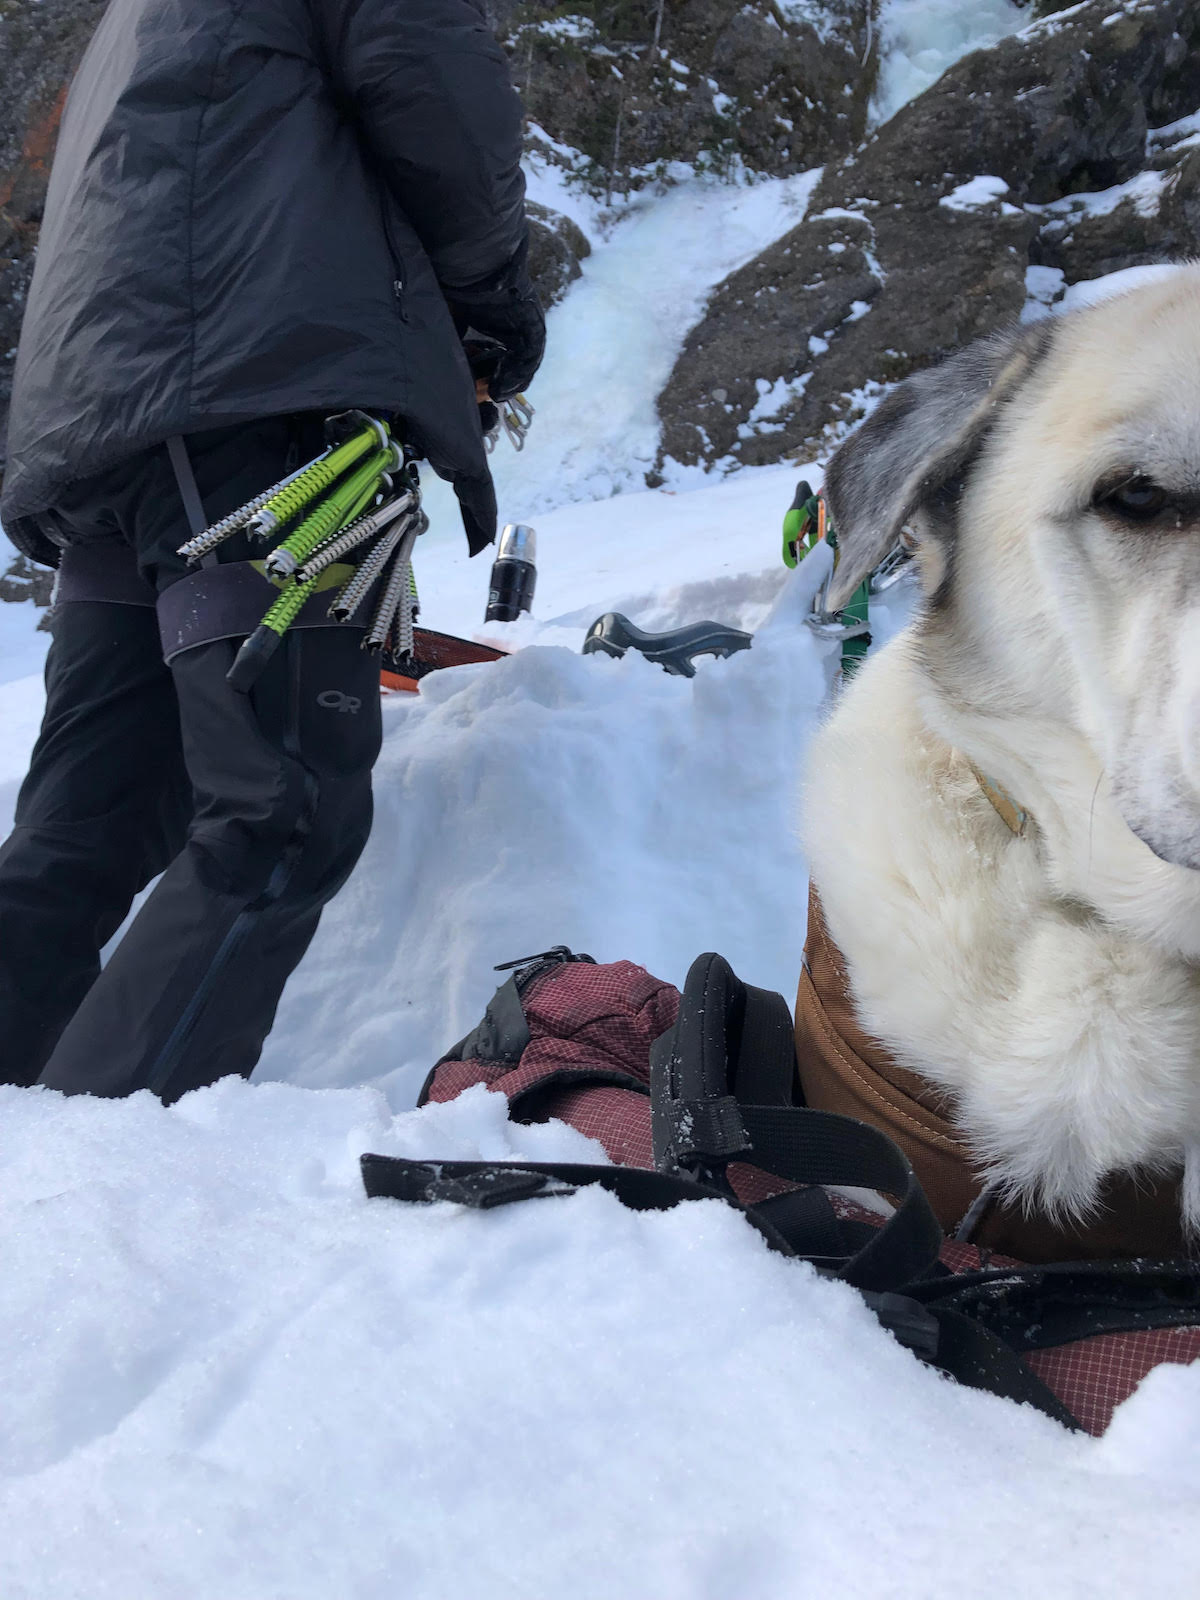 One of the black, reservoir tip caps can be seen on the long Ultralight Express screw that is racked on the author's harness in the background while Kanut the dog stares down the camera. [Photo] Chris Luehder